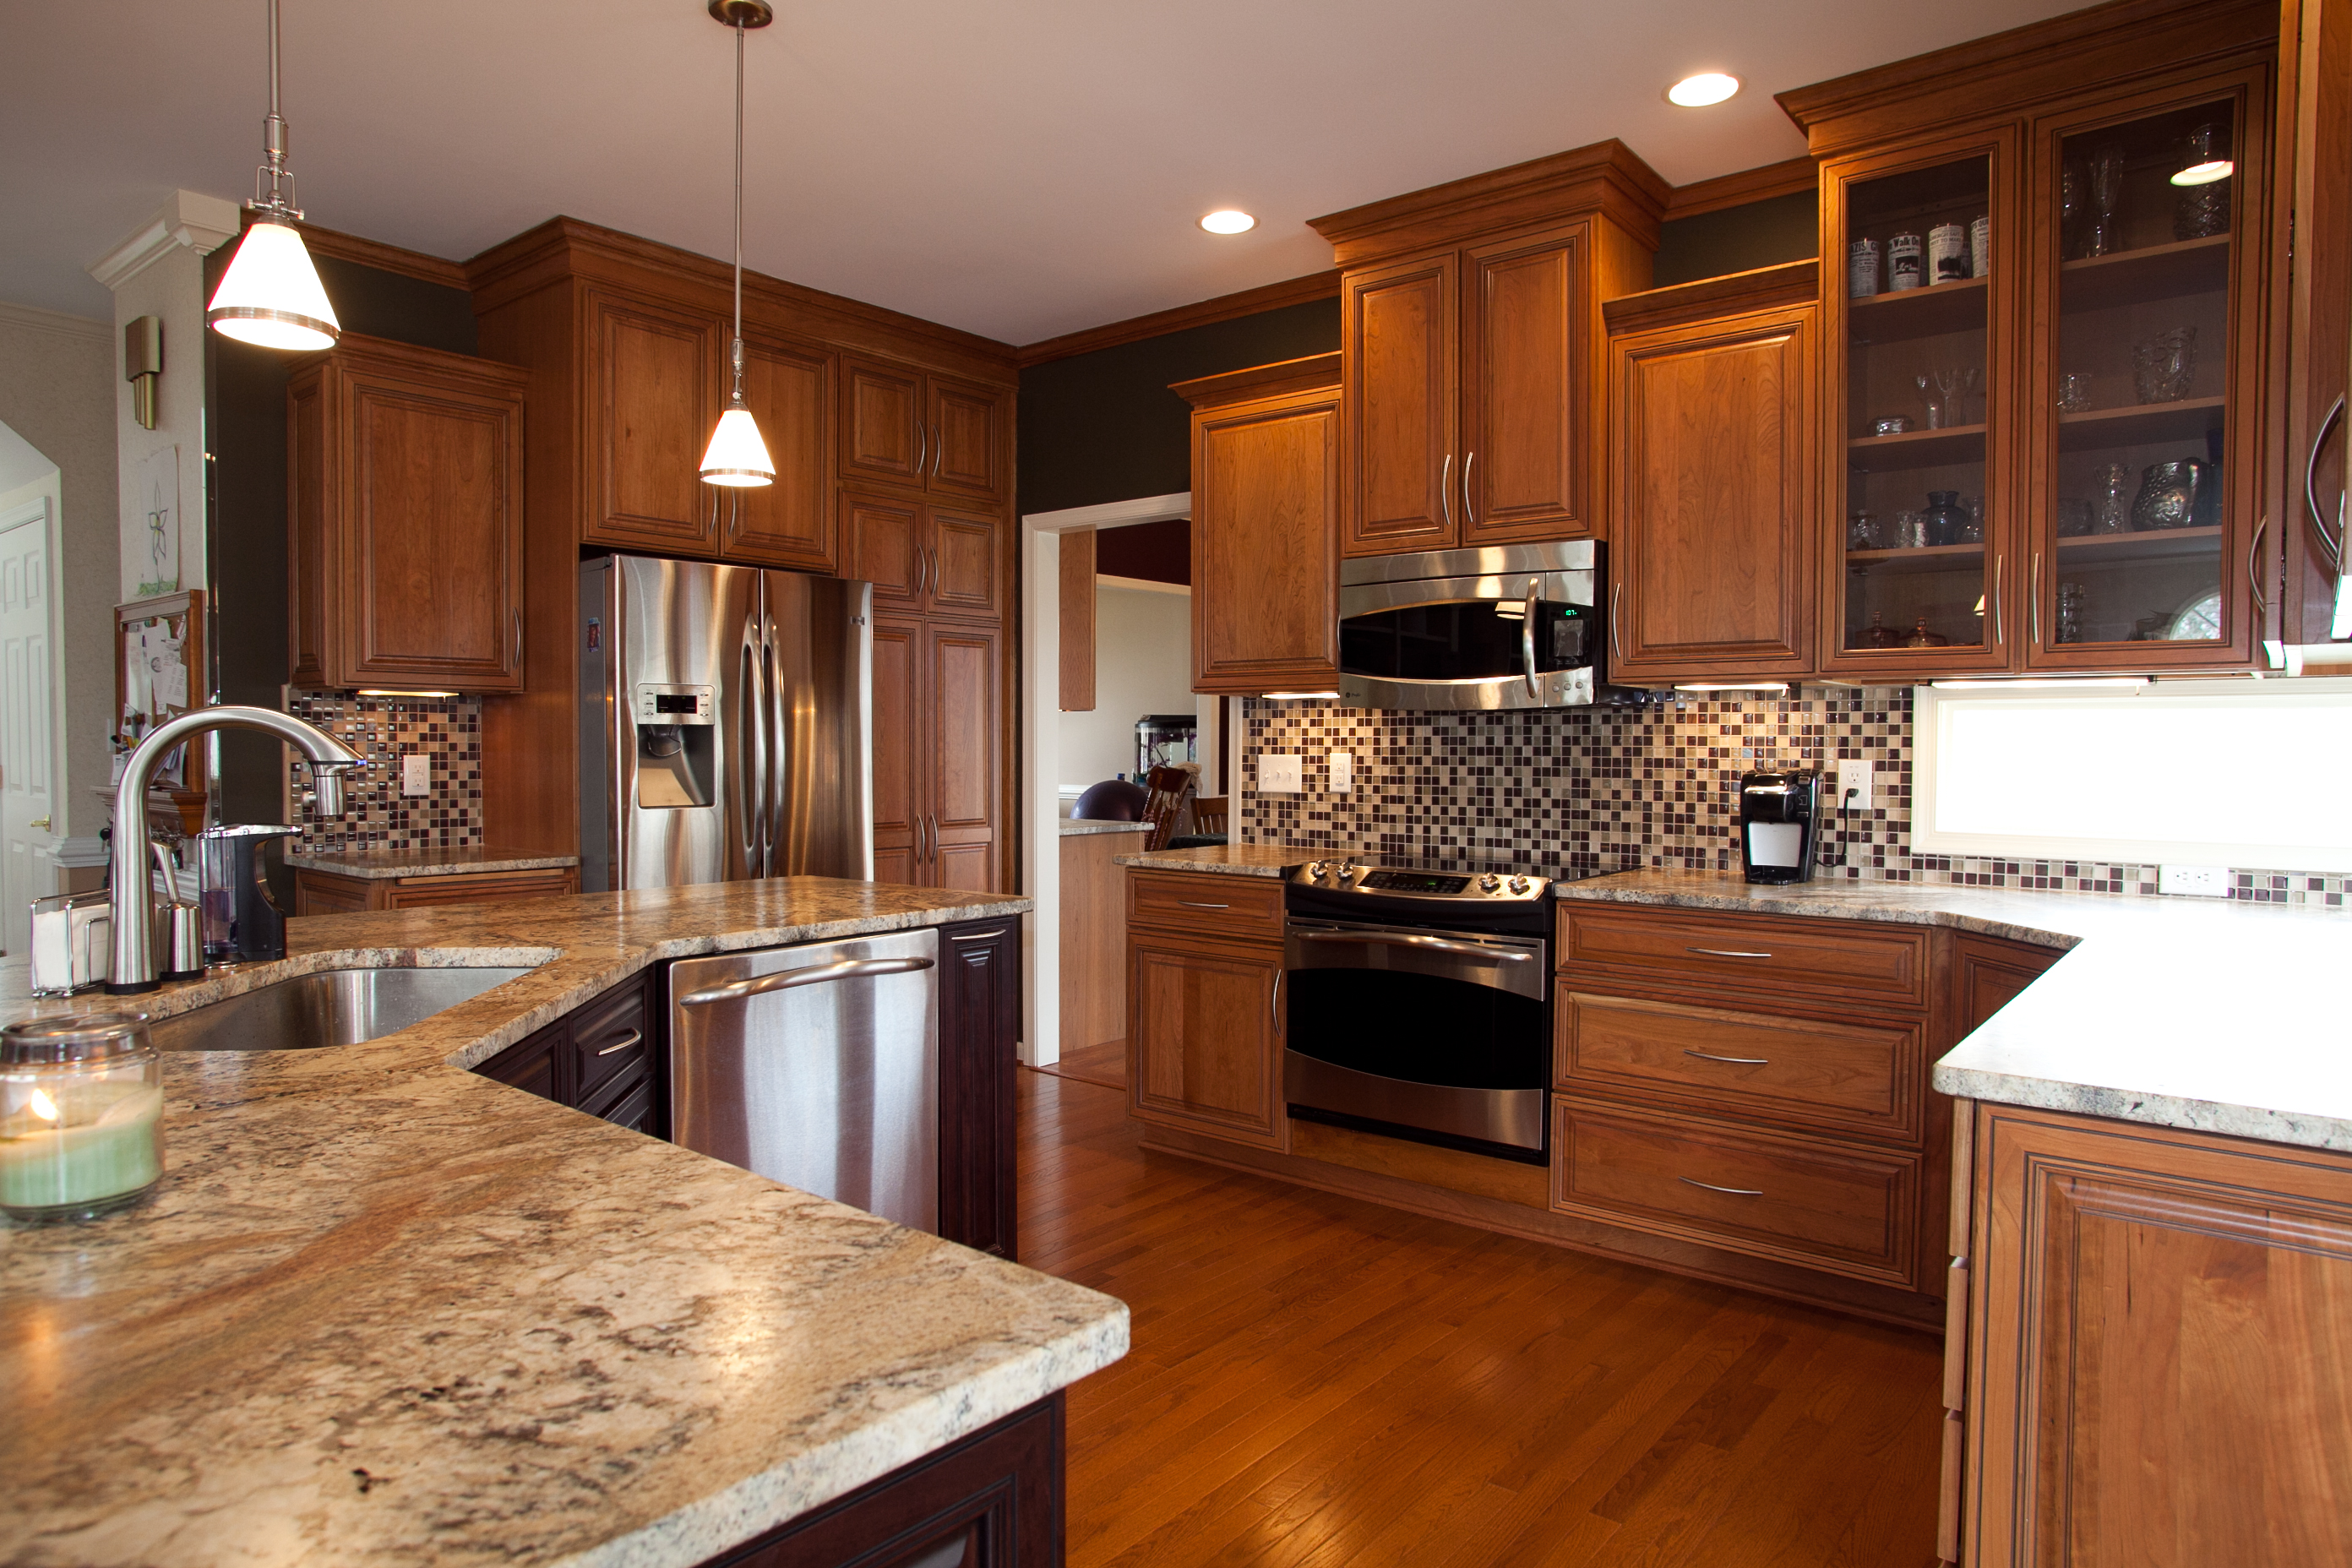 Kitchen Remodel Gallery living room list of things design